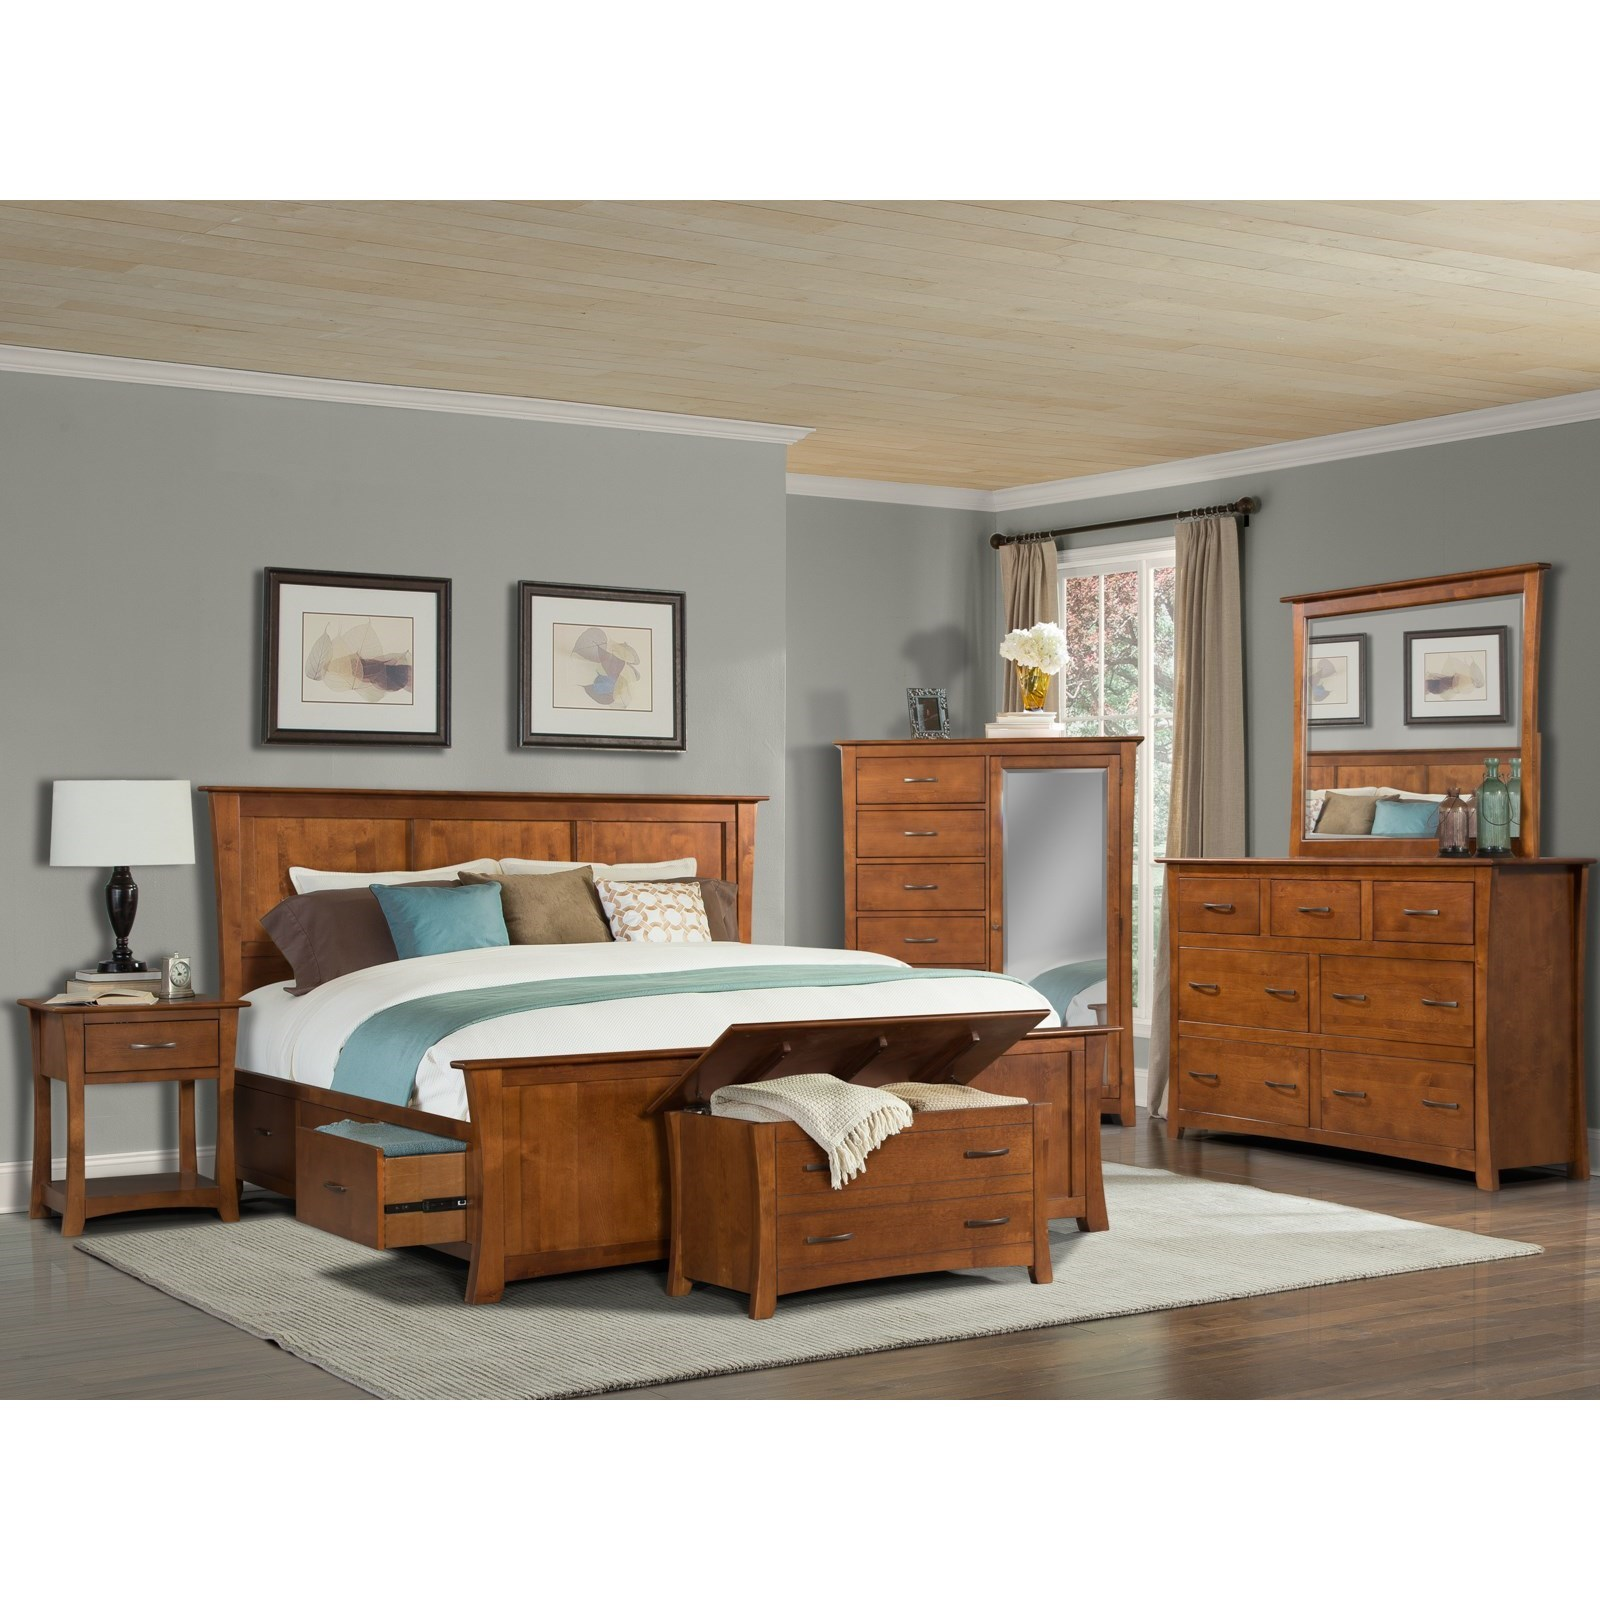 Grant Park King Bedroom Group by A-A at Walker's Furniture